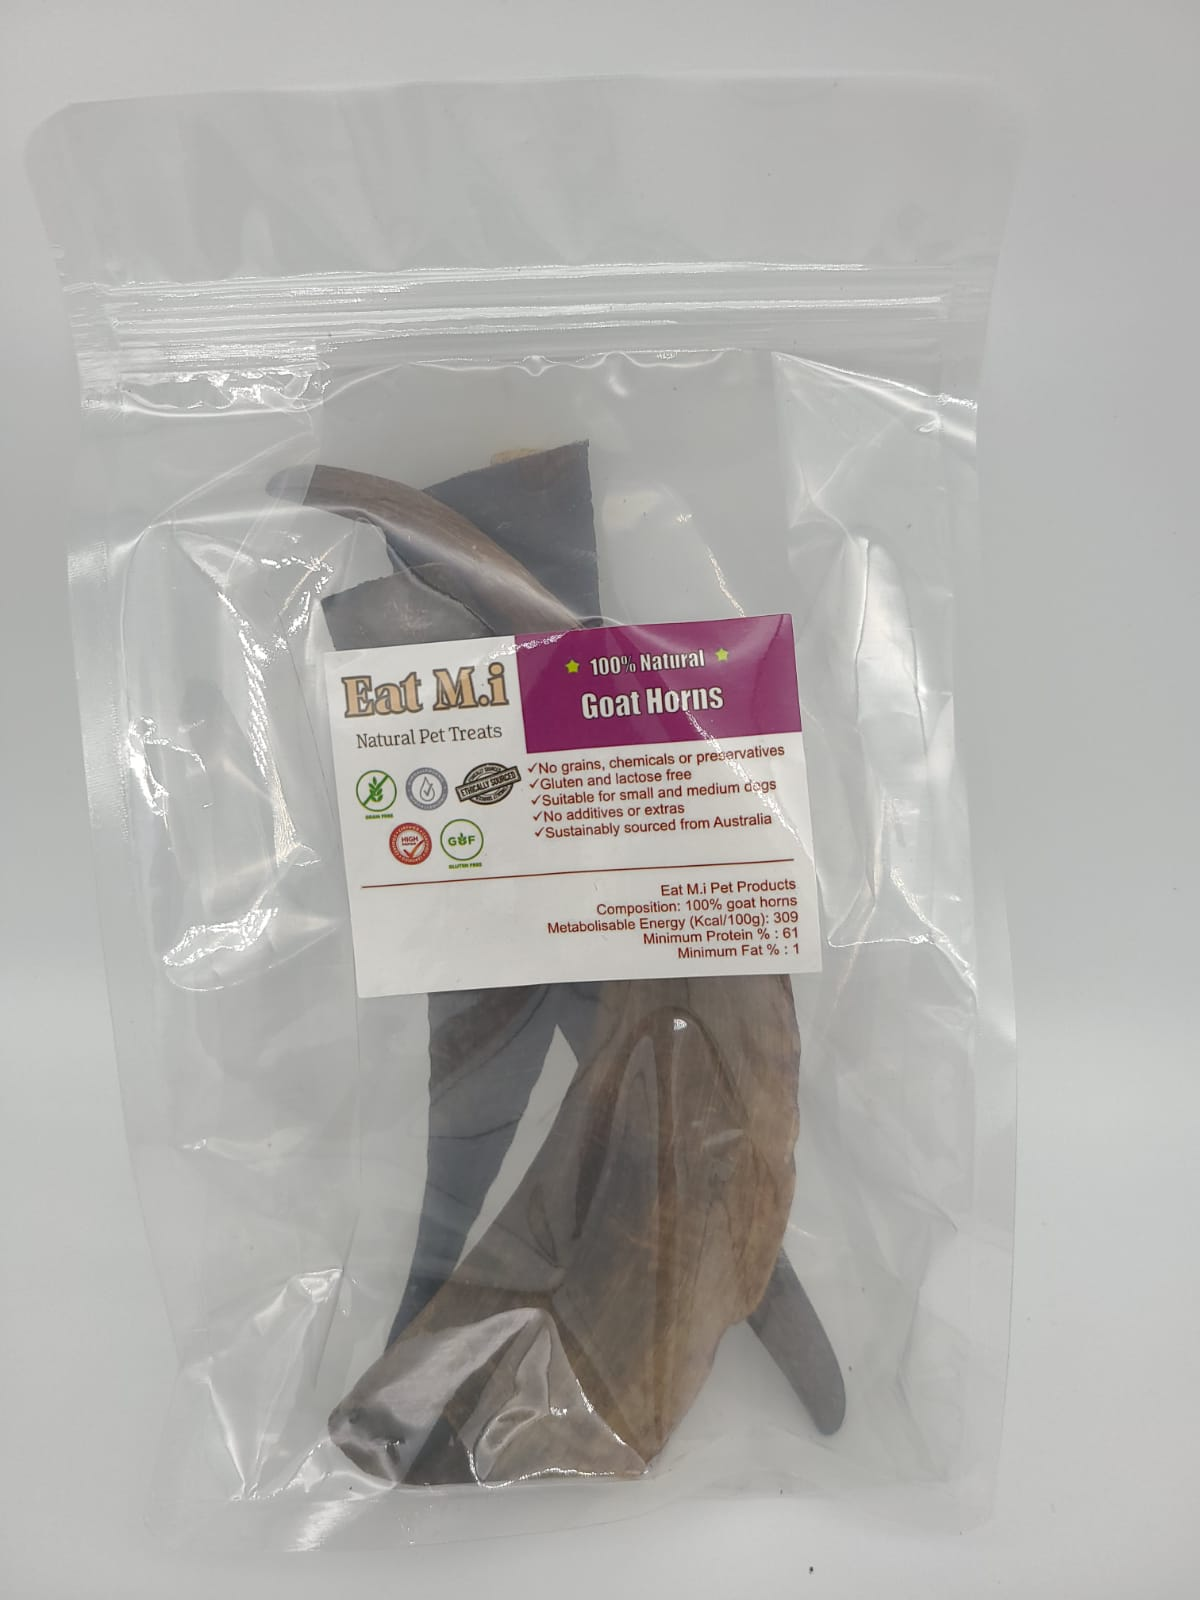 Eat M.i. (AUSTRALIA) Goat Horns (small) 15cm - 18cm